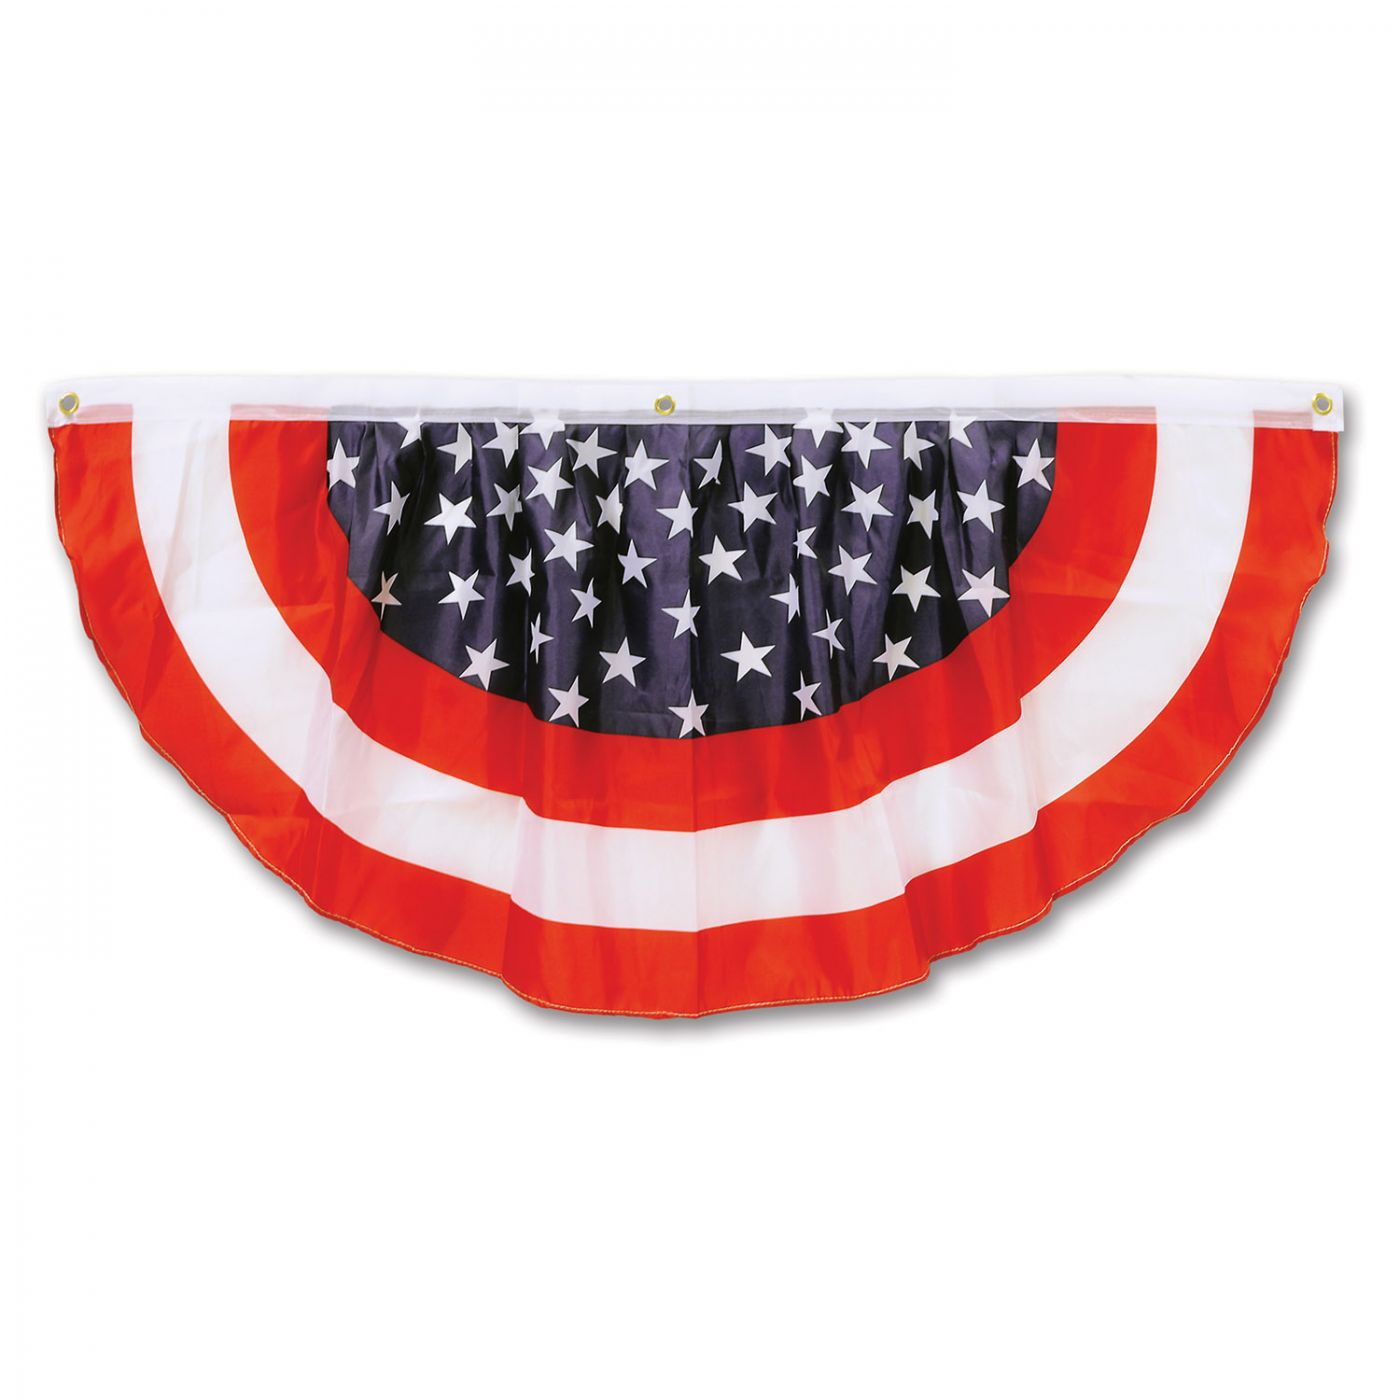 Stars & Stripes Fabric Bunting (6) image